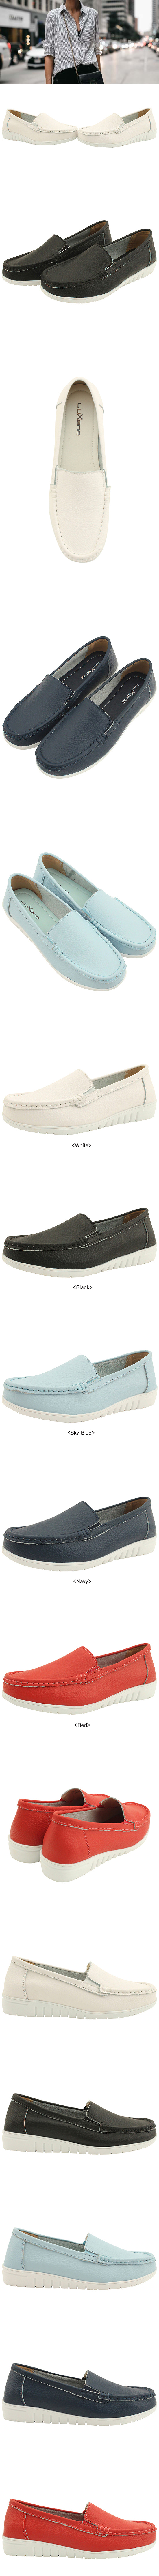 Leather Simple Shoes Loafers Black